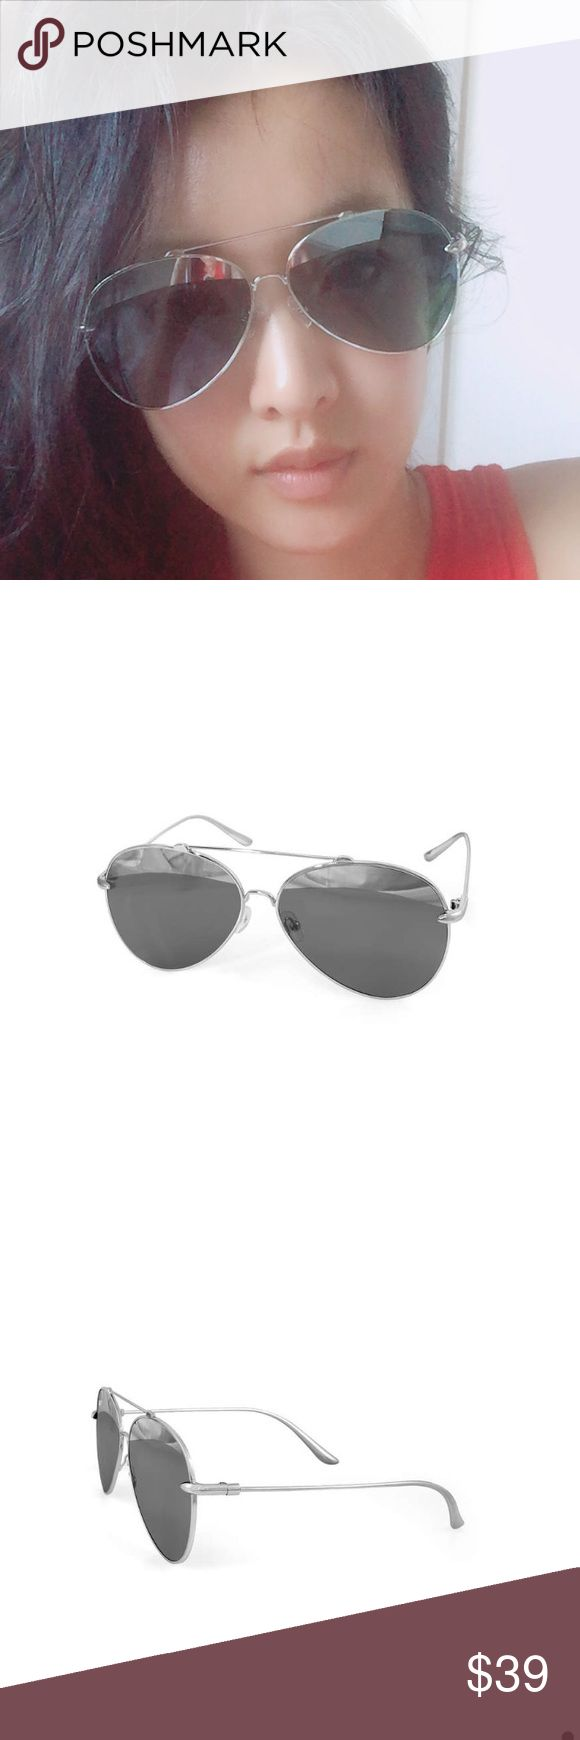 AQS unisex aviator sunglasses Never worn new. In perfect condition. Sunglasses case, cleaning cloth are included. Eye-bridge-temple=60-13-140mm. Standard hinge. Silver frame. 100% uv protection. Made in Italy. No trades AQS Accessories Sunglasses